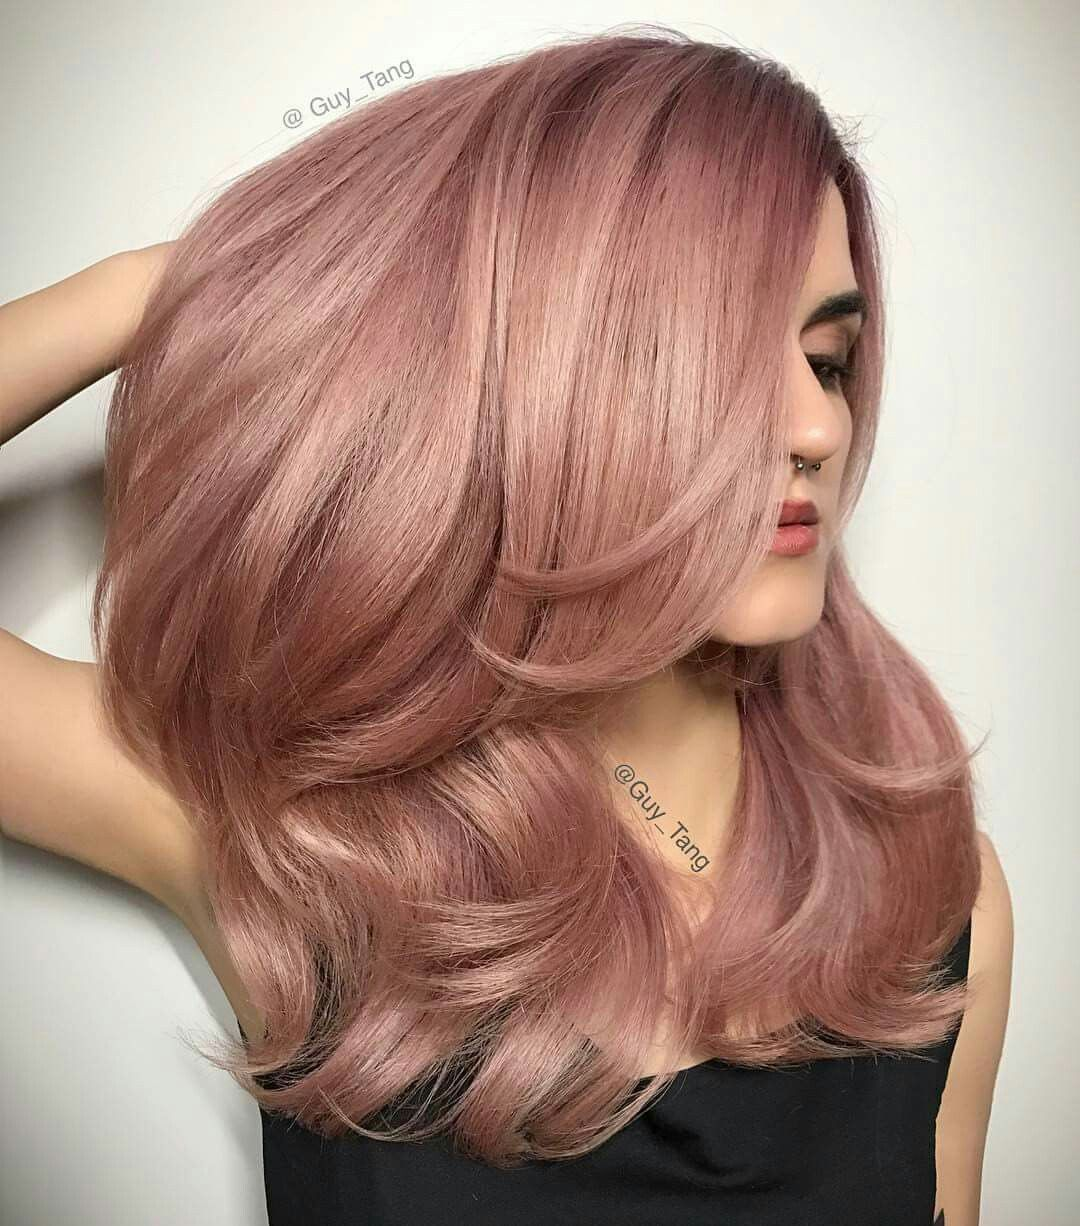 Pin By Allison Berger On Coiffure Pinterest Twitter Hair